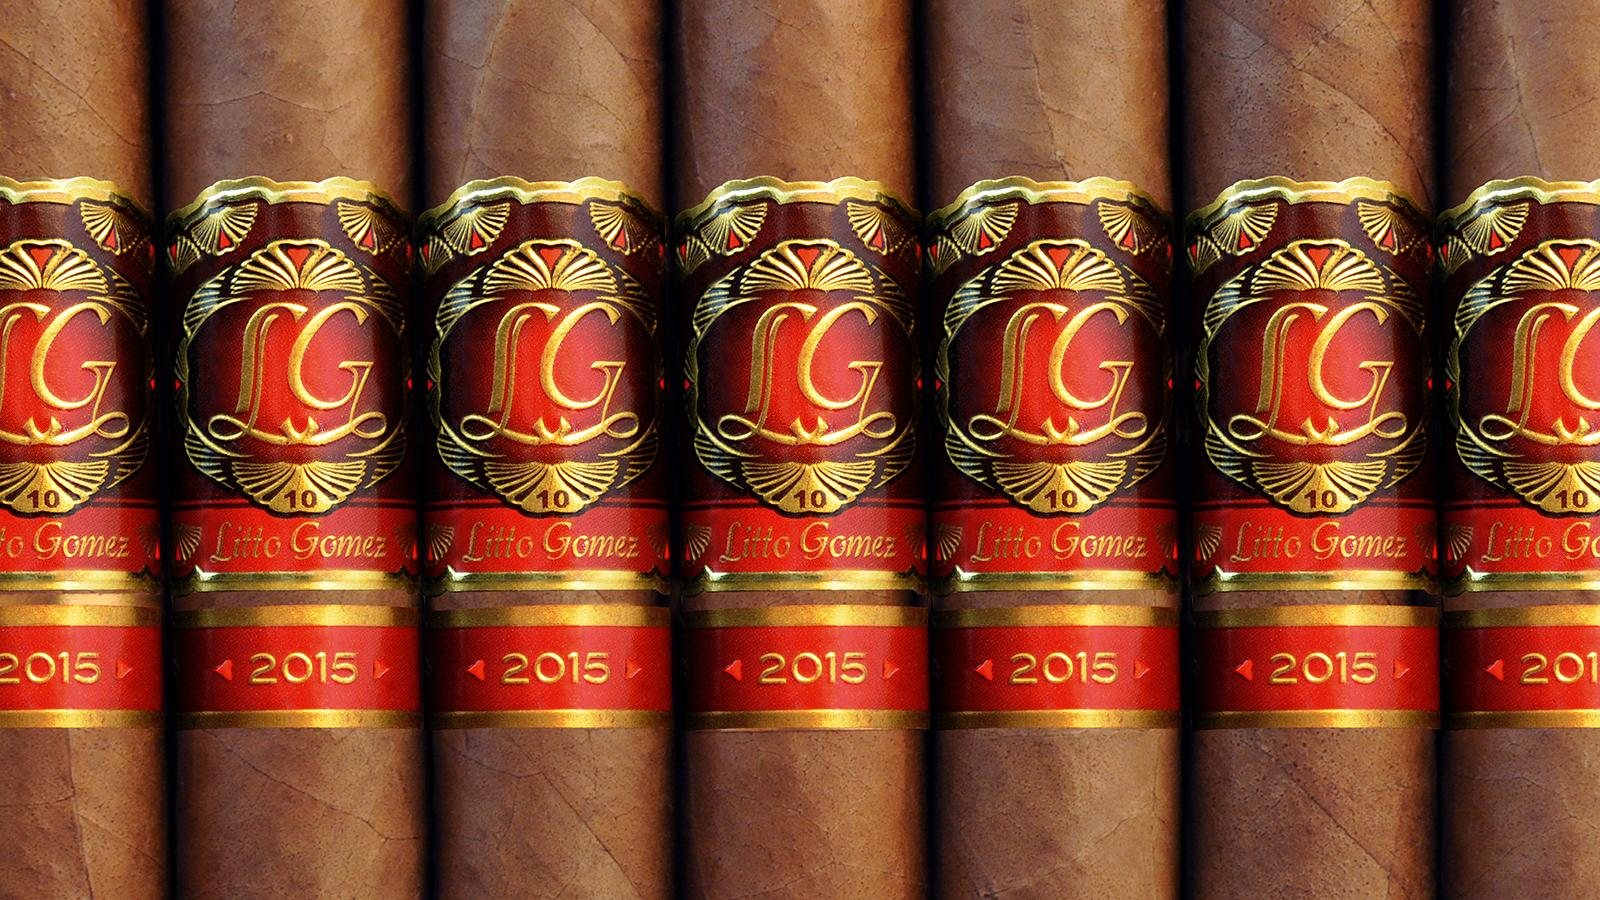 La Flor Dominicana Debuts New Cigars, Extensions